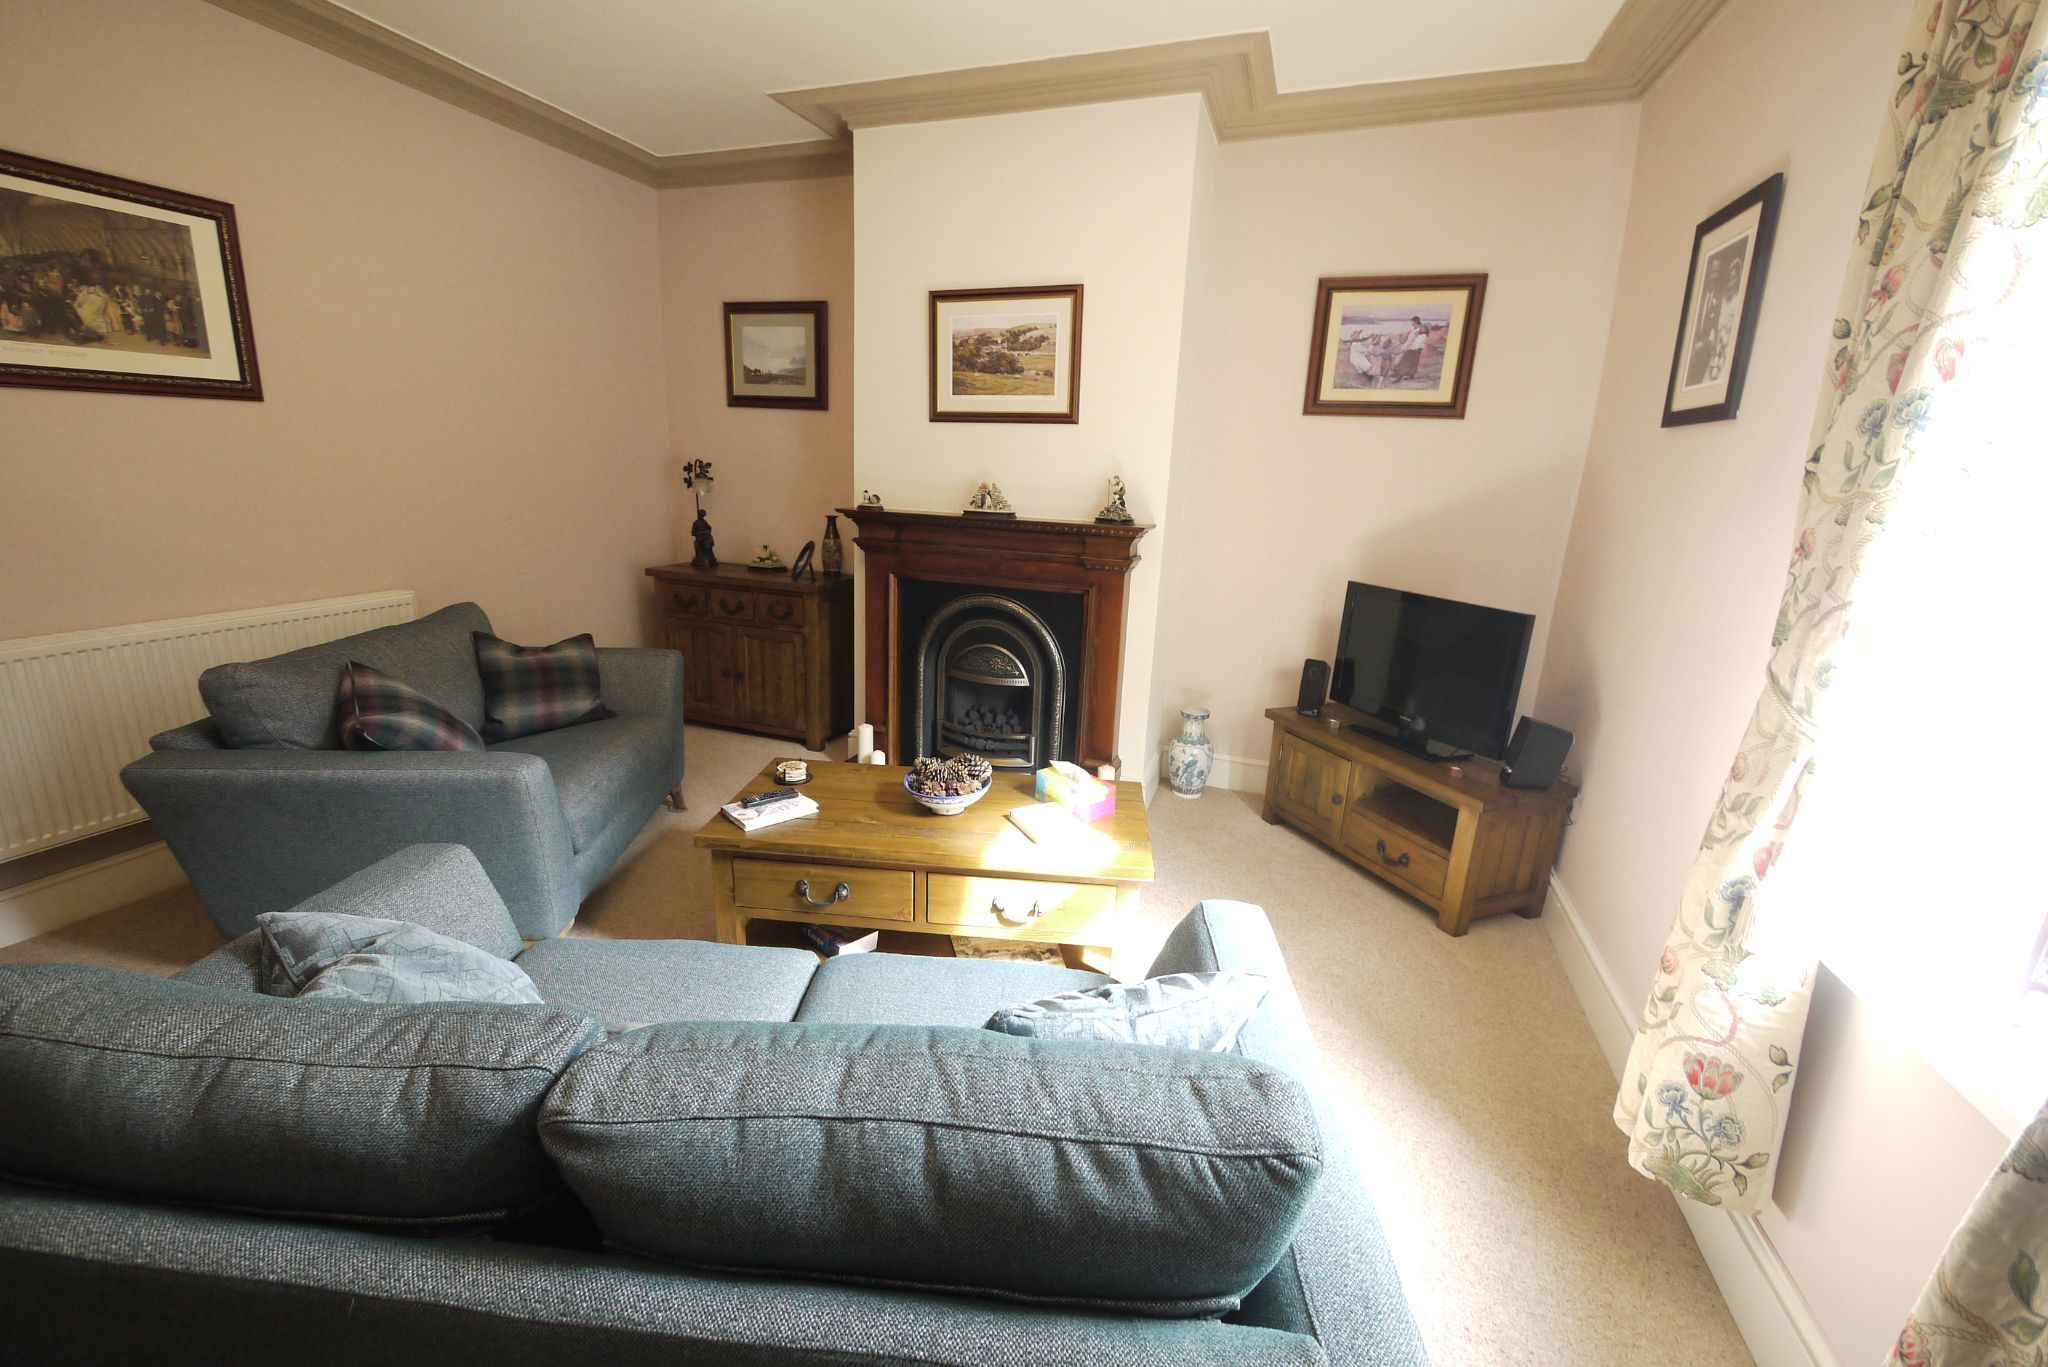 3 bedroom semi-detached house For Sale in Brighouse - Photograph 16.